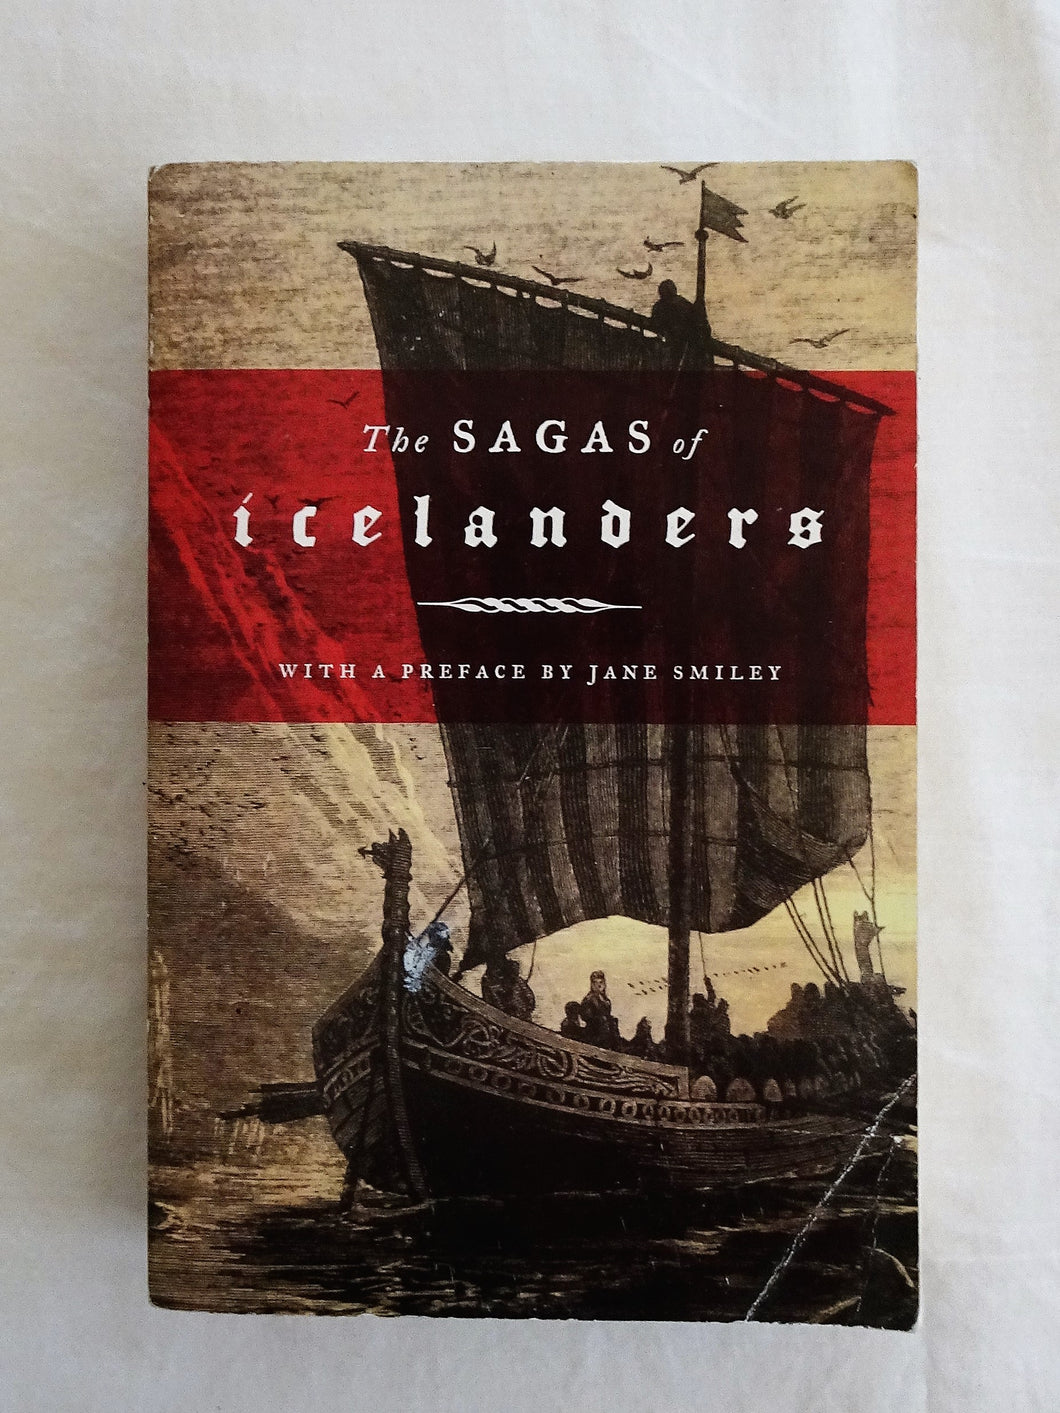 The Sagas of Icelanders by Jane Smiley